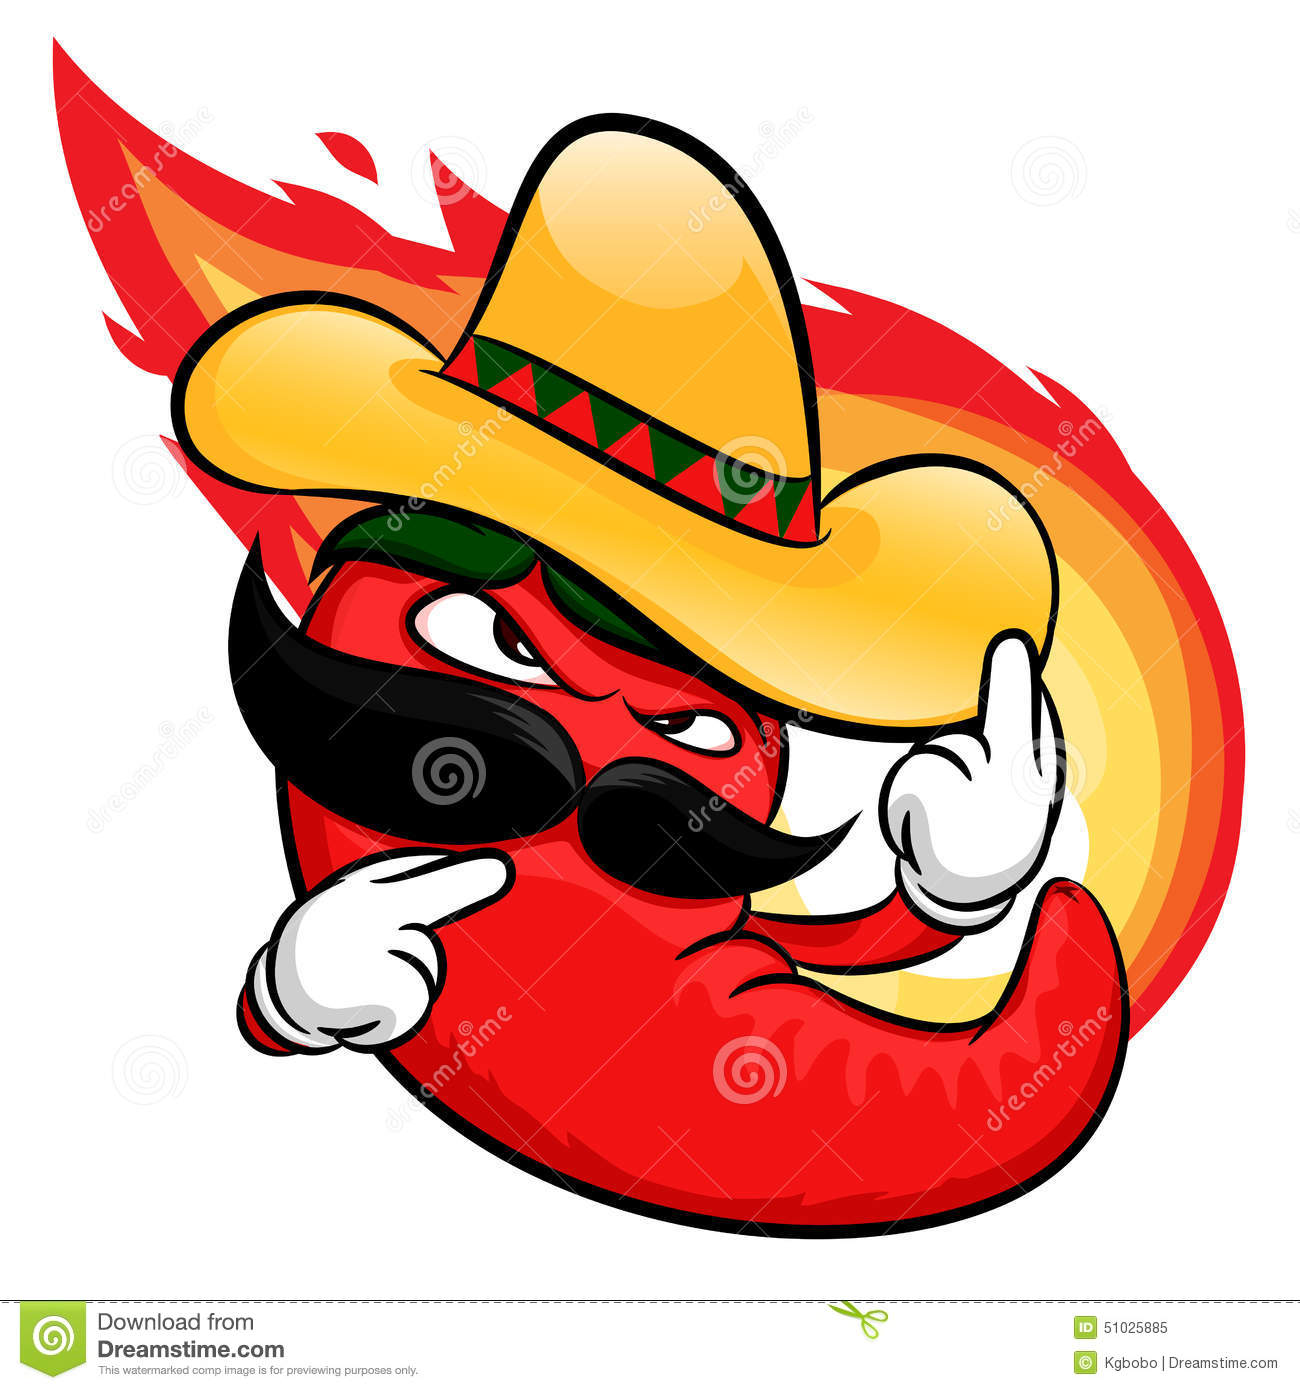 Red Hot Chili Pepper Cartoon Stock Vector - Image: 51025885